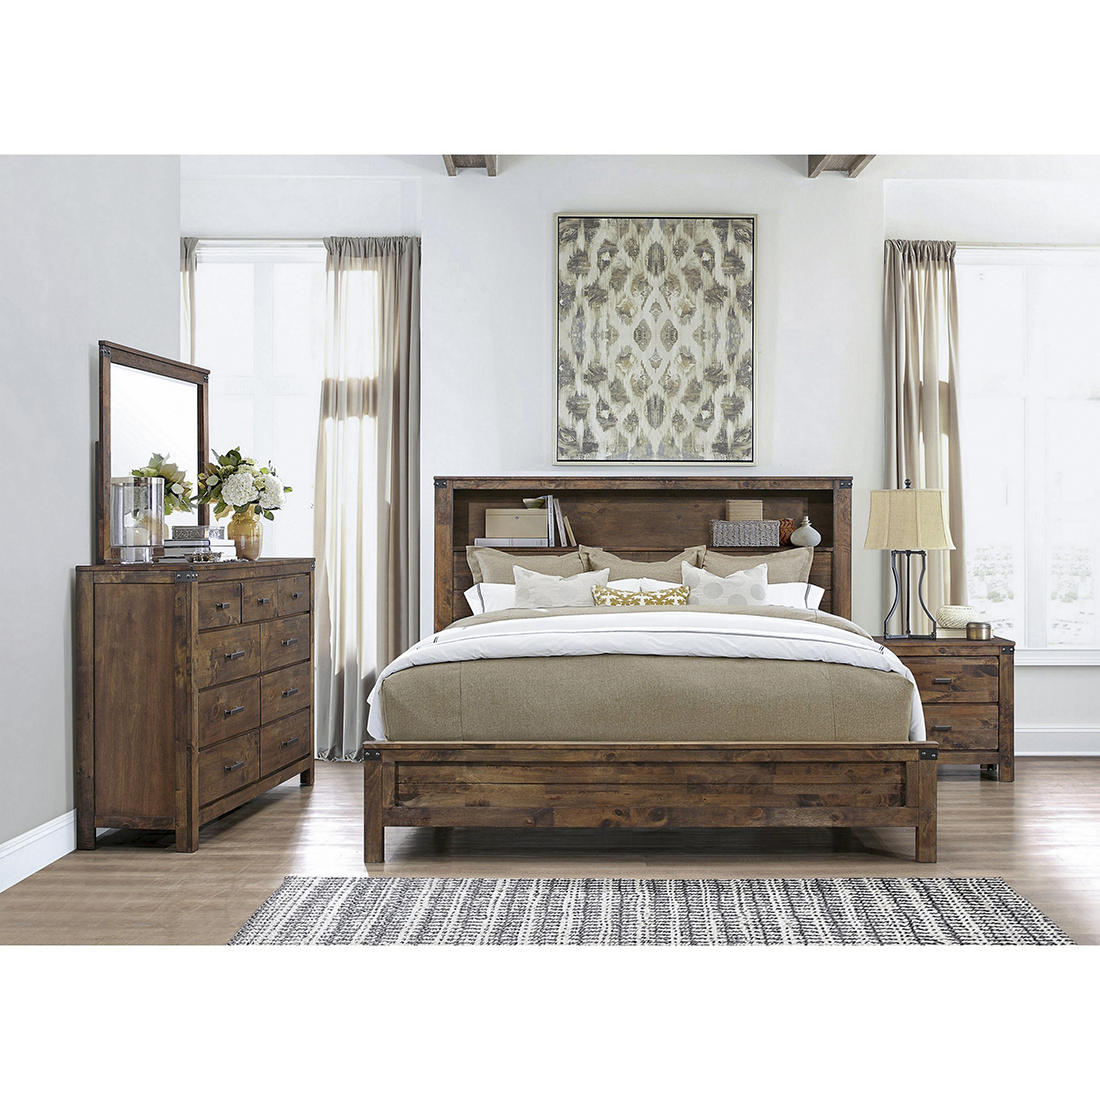 Global Furniture Victoria Queen Bedroom Set With White Glove Delivery Bjs Wholesale Club